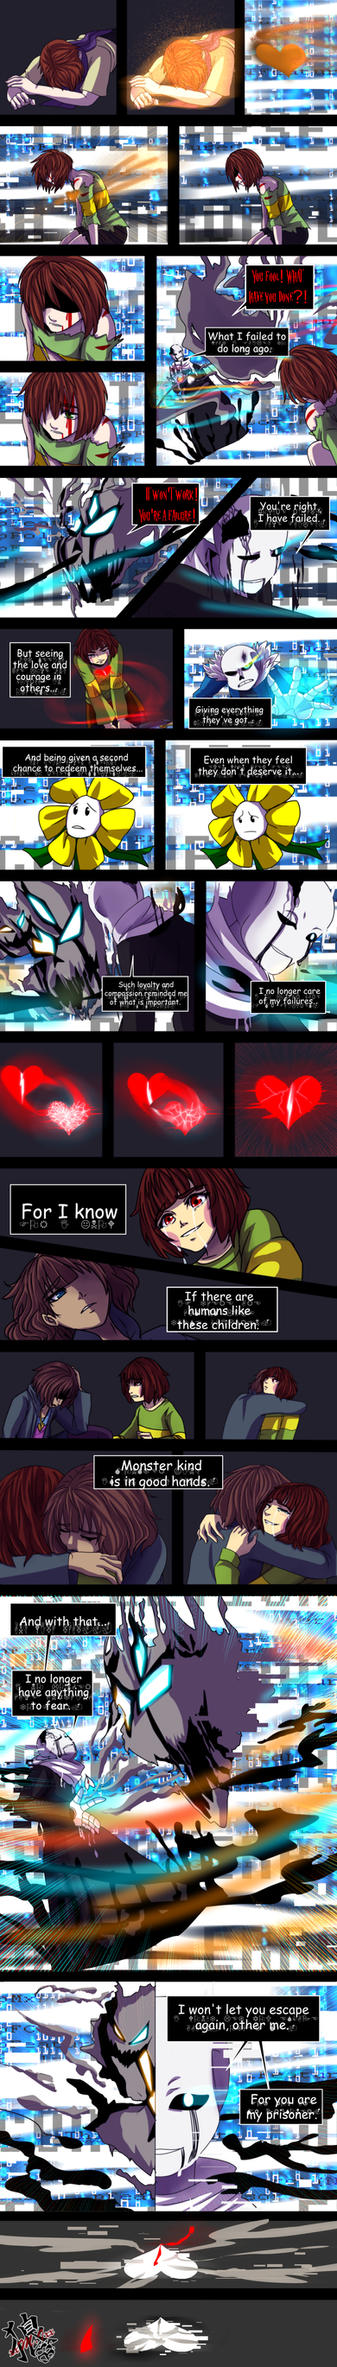 ::Nightmaretale - pg 99:: by xxMileikaIvanaxx